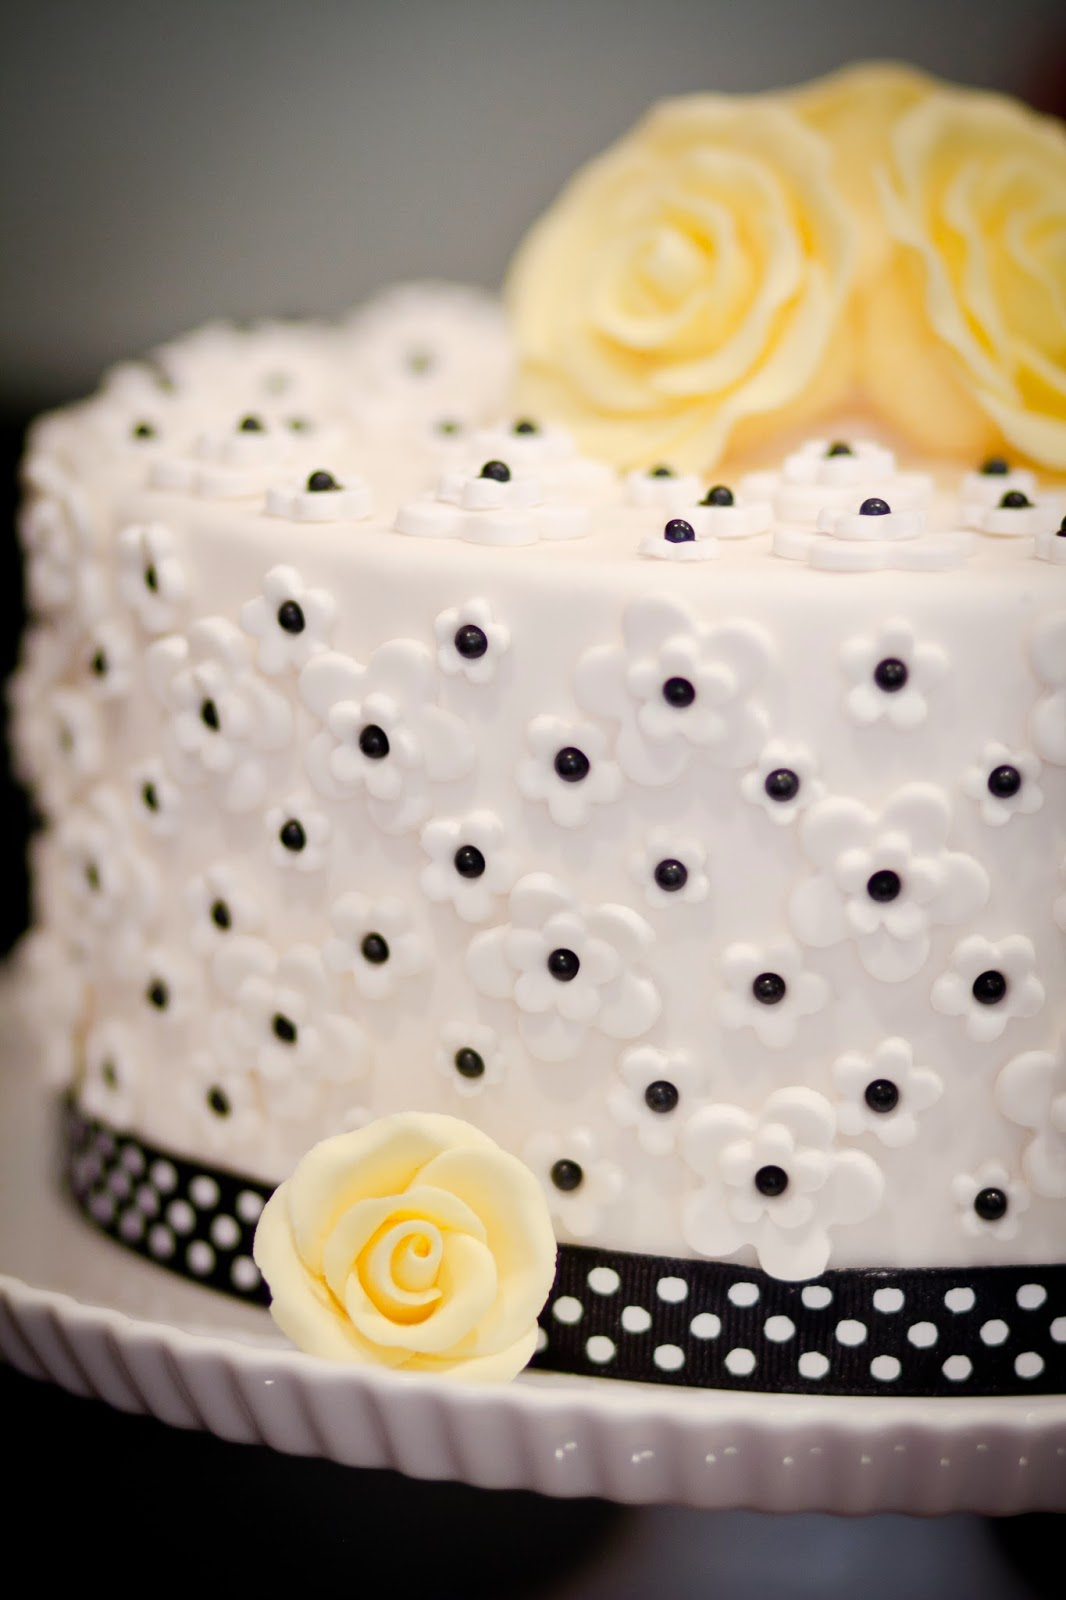 How To Get Cake Decorating Experience : Kate Landers Events, LLC: DIY Fondant Cake Decorating Kits ...